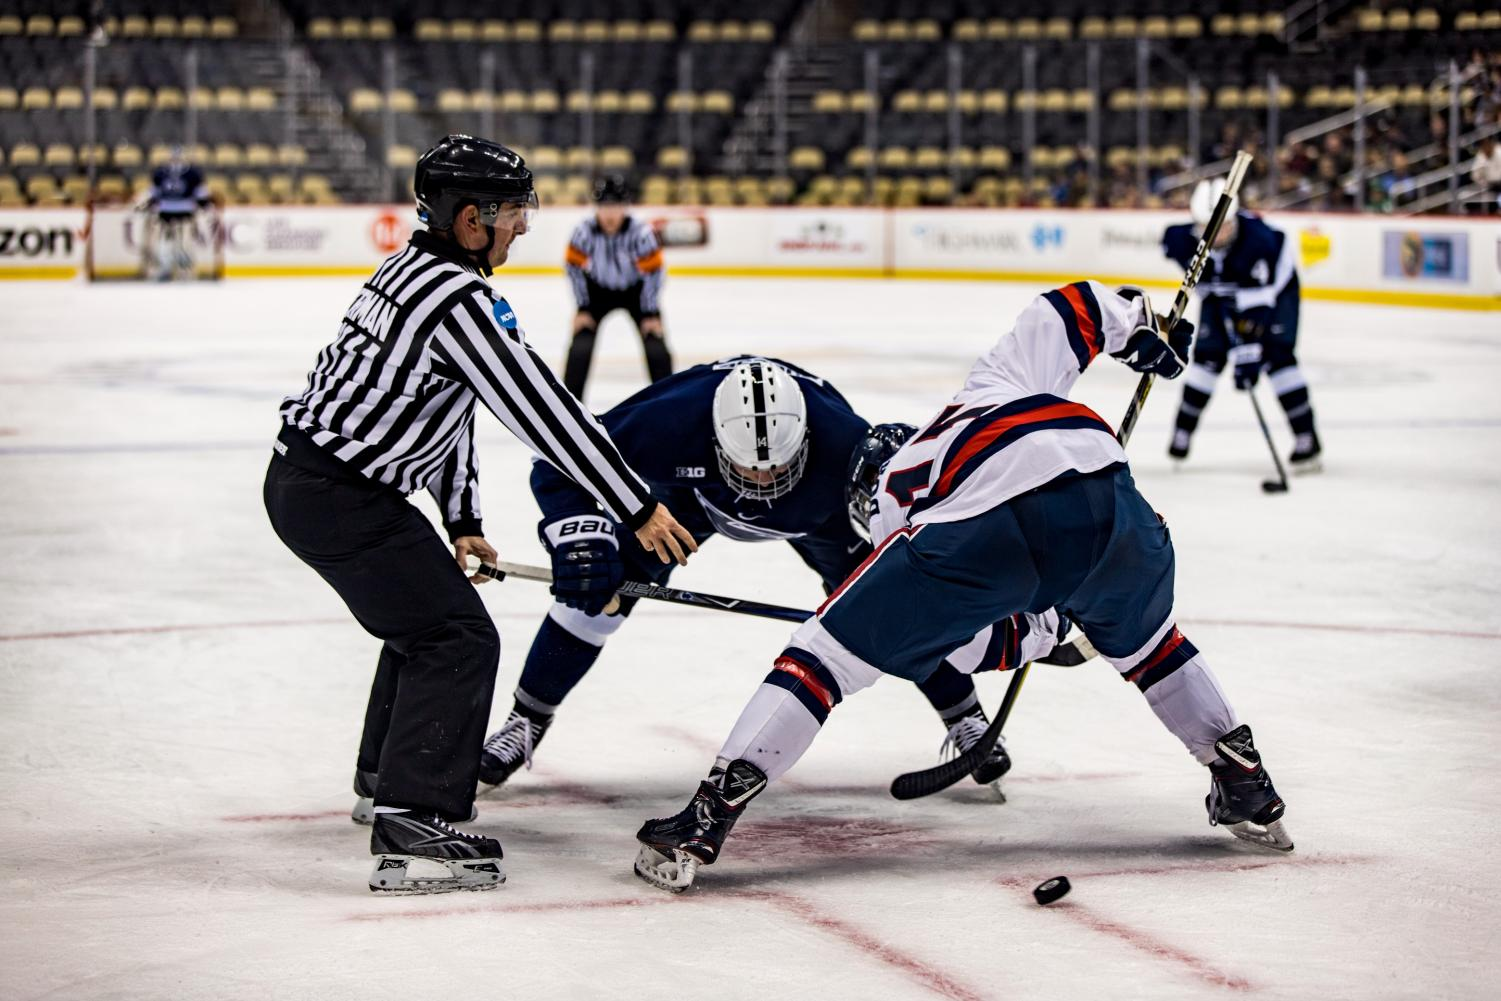 The RMU Men's Hockey Team took on PSU on Friday, December 8th, 2017.